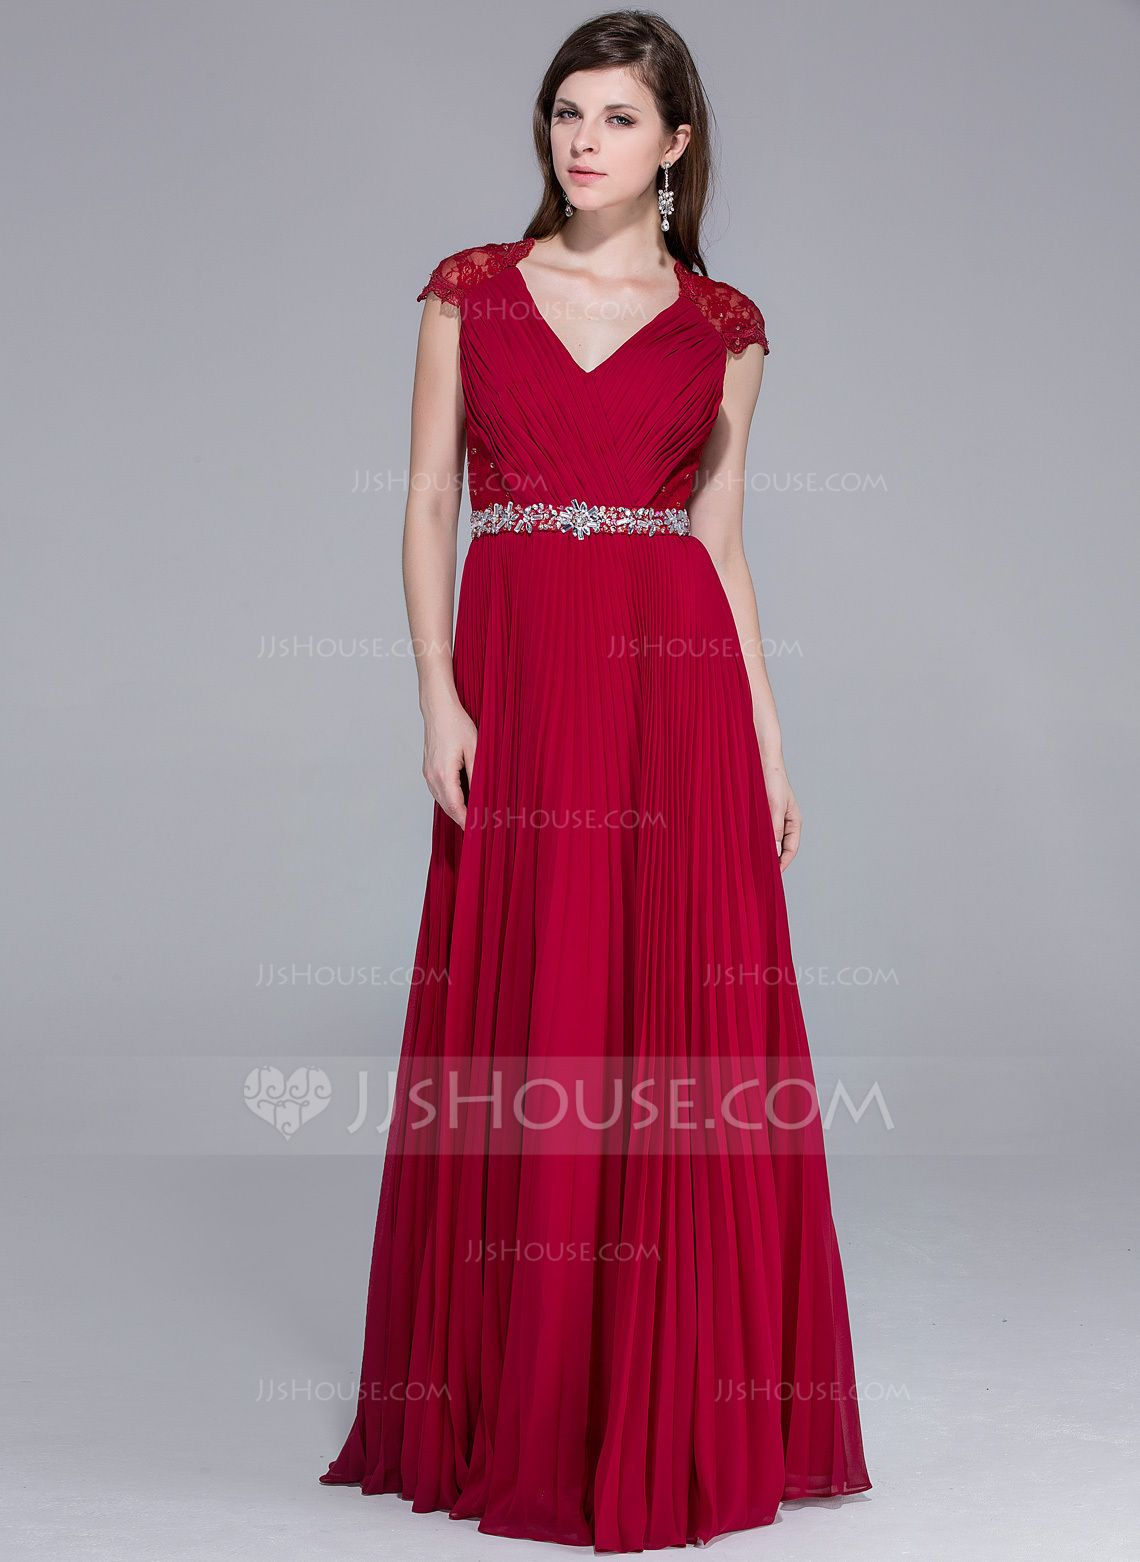 ceb52de1479 A-Line Princess V-neck Floor-Length Chiffon Lace Evening Dress With Beading  Pleated (017025540) - JJsHouse